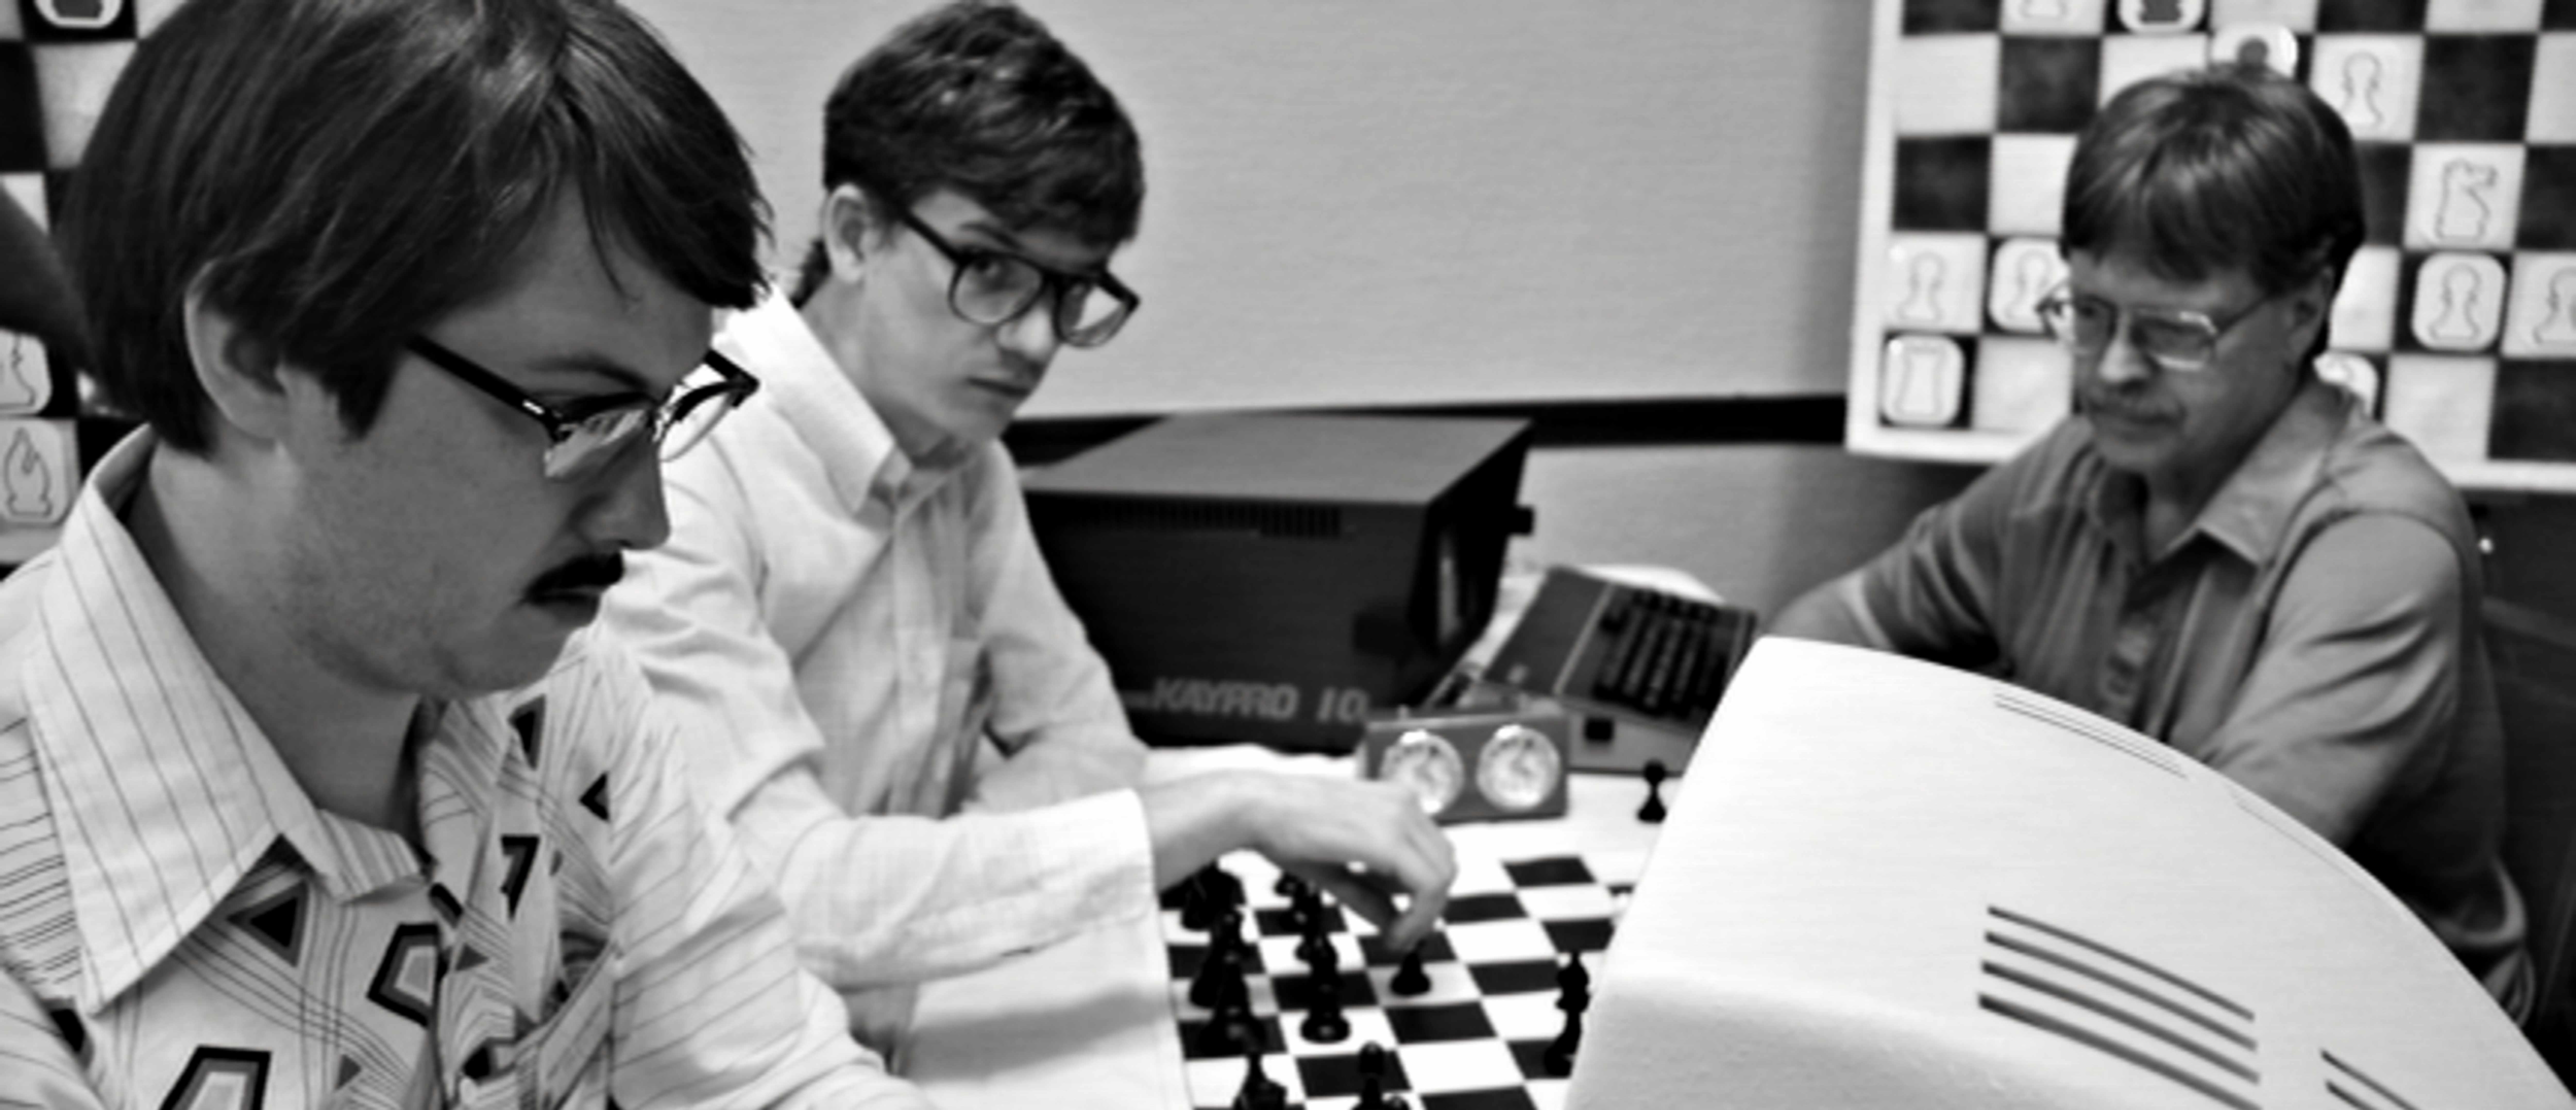 An image from Computer Chess